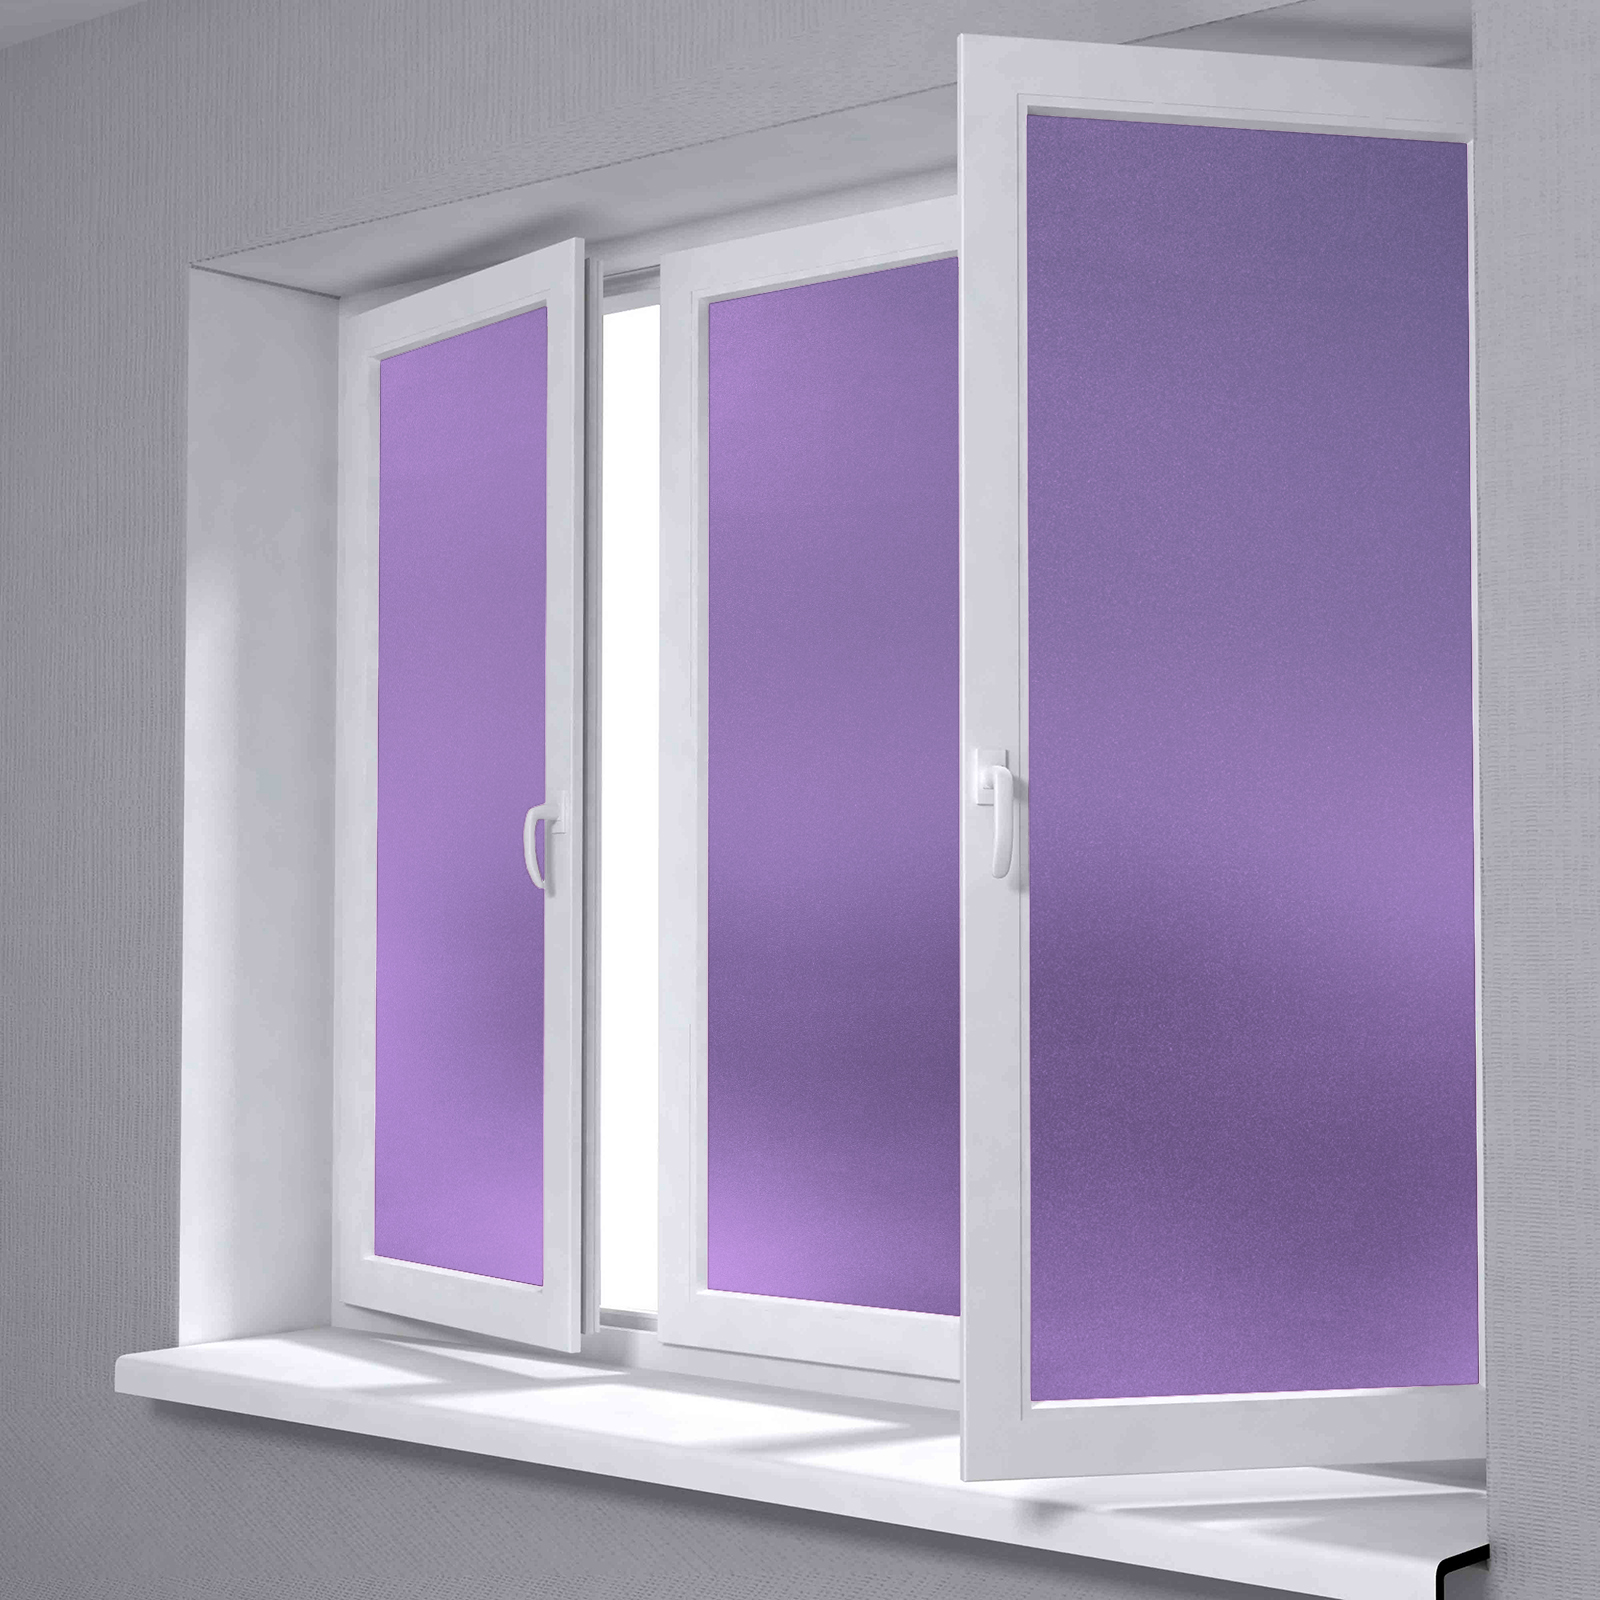 12 x48 purple frosted film glass home bathroom window security privacy sticker ebay. Black Bedroom Furniture Sets. Home Design Ideas